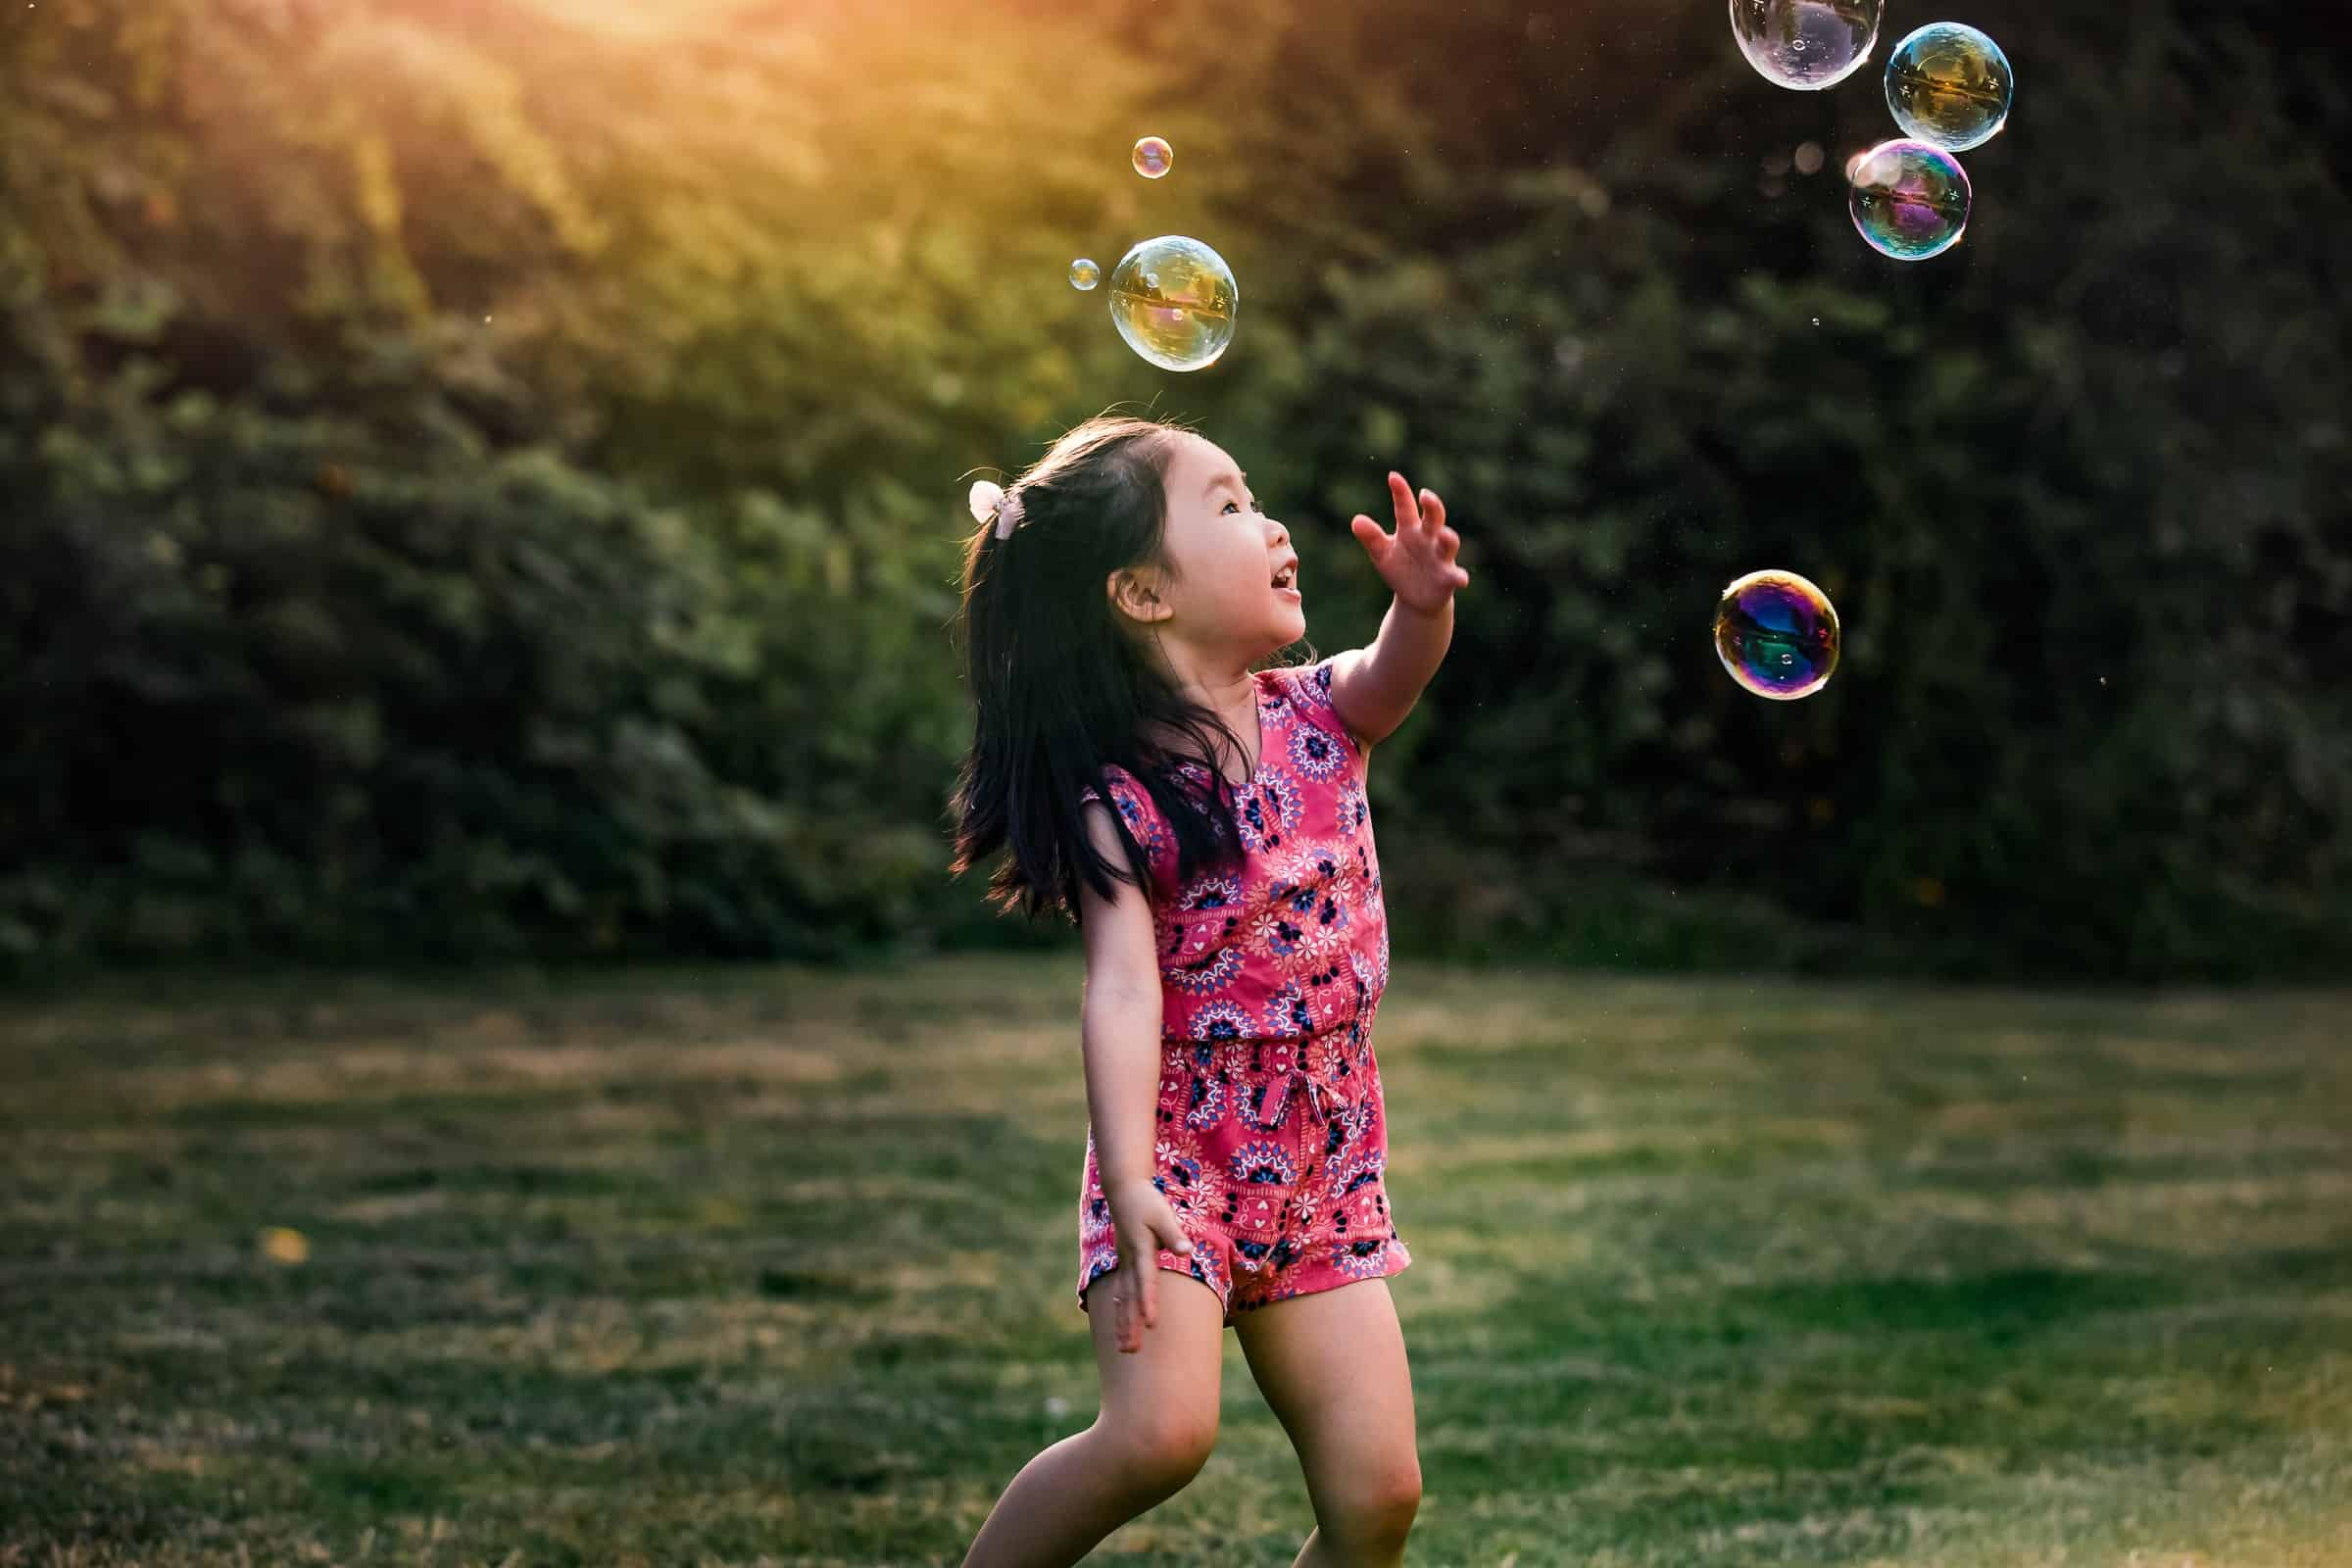 little girl chasing bubbles in the sunset